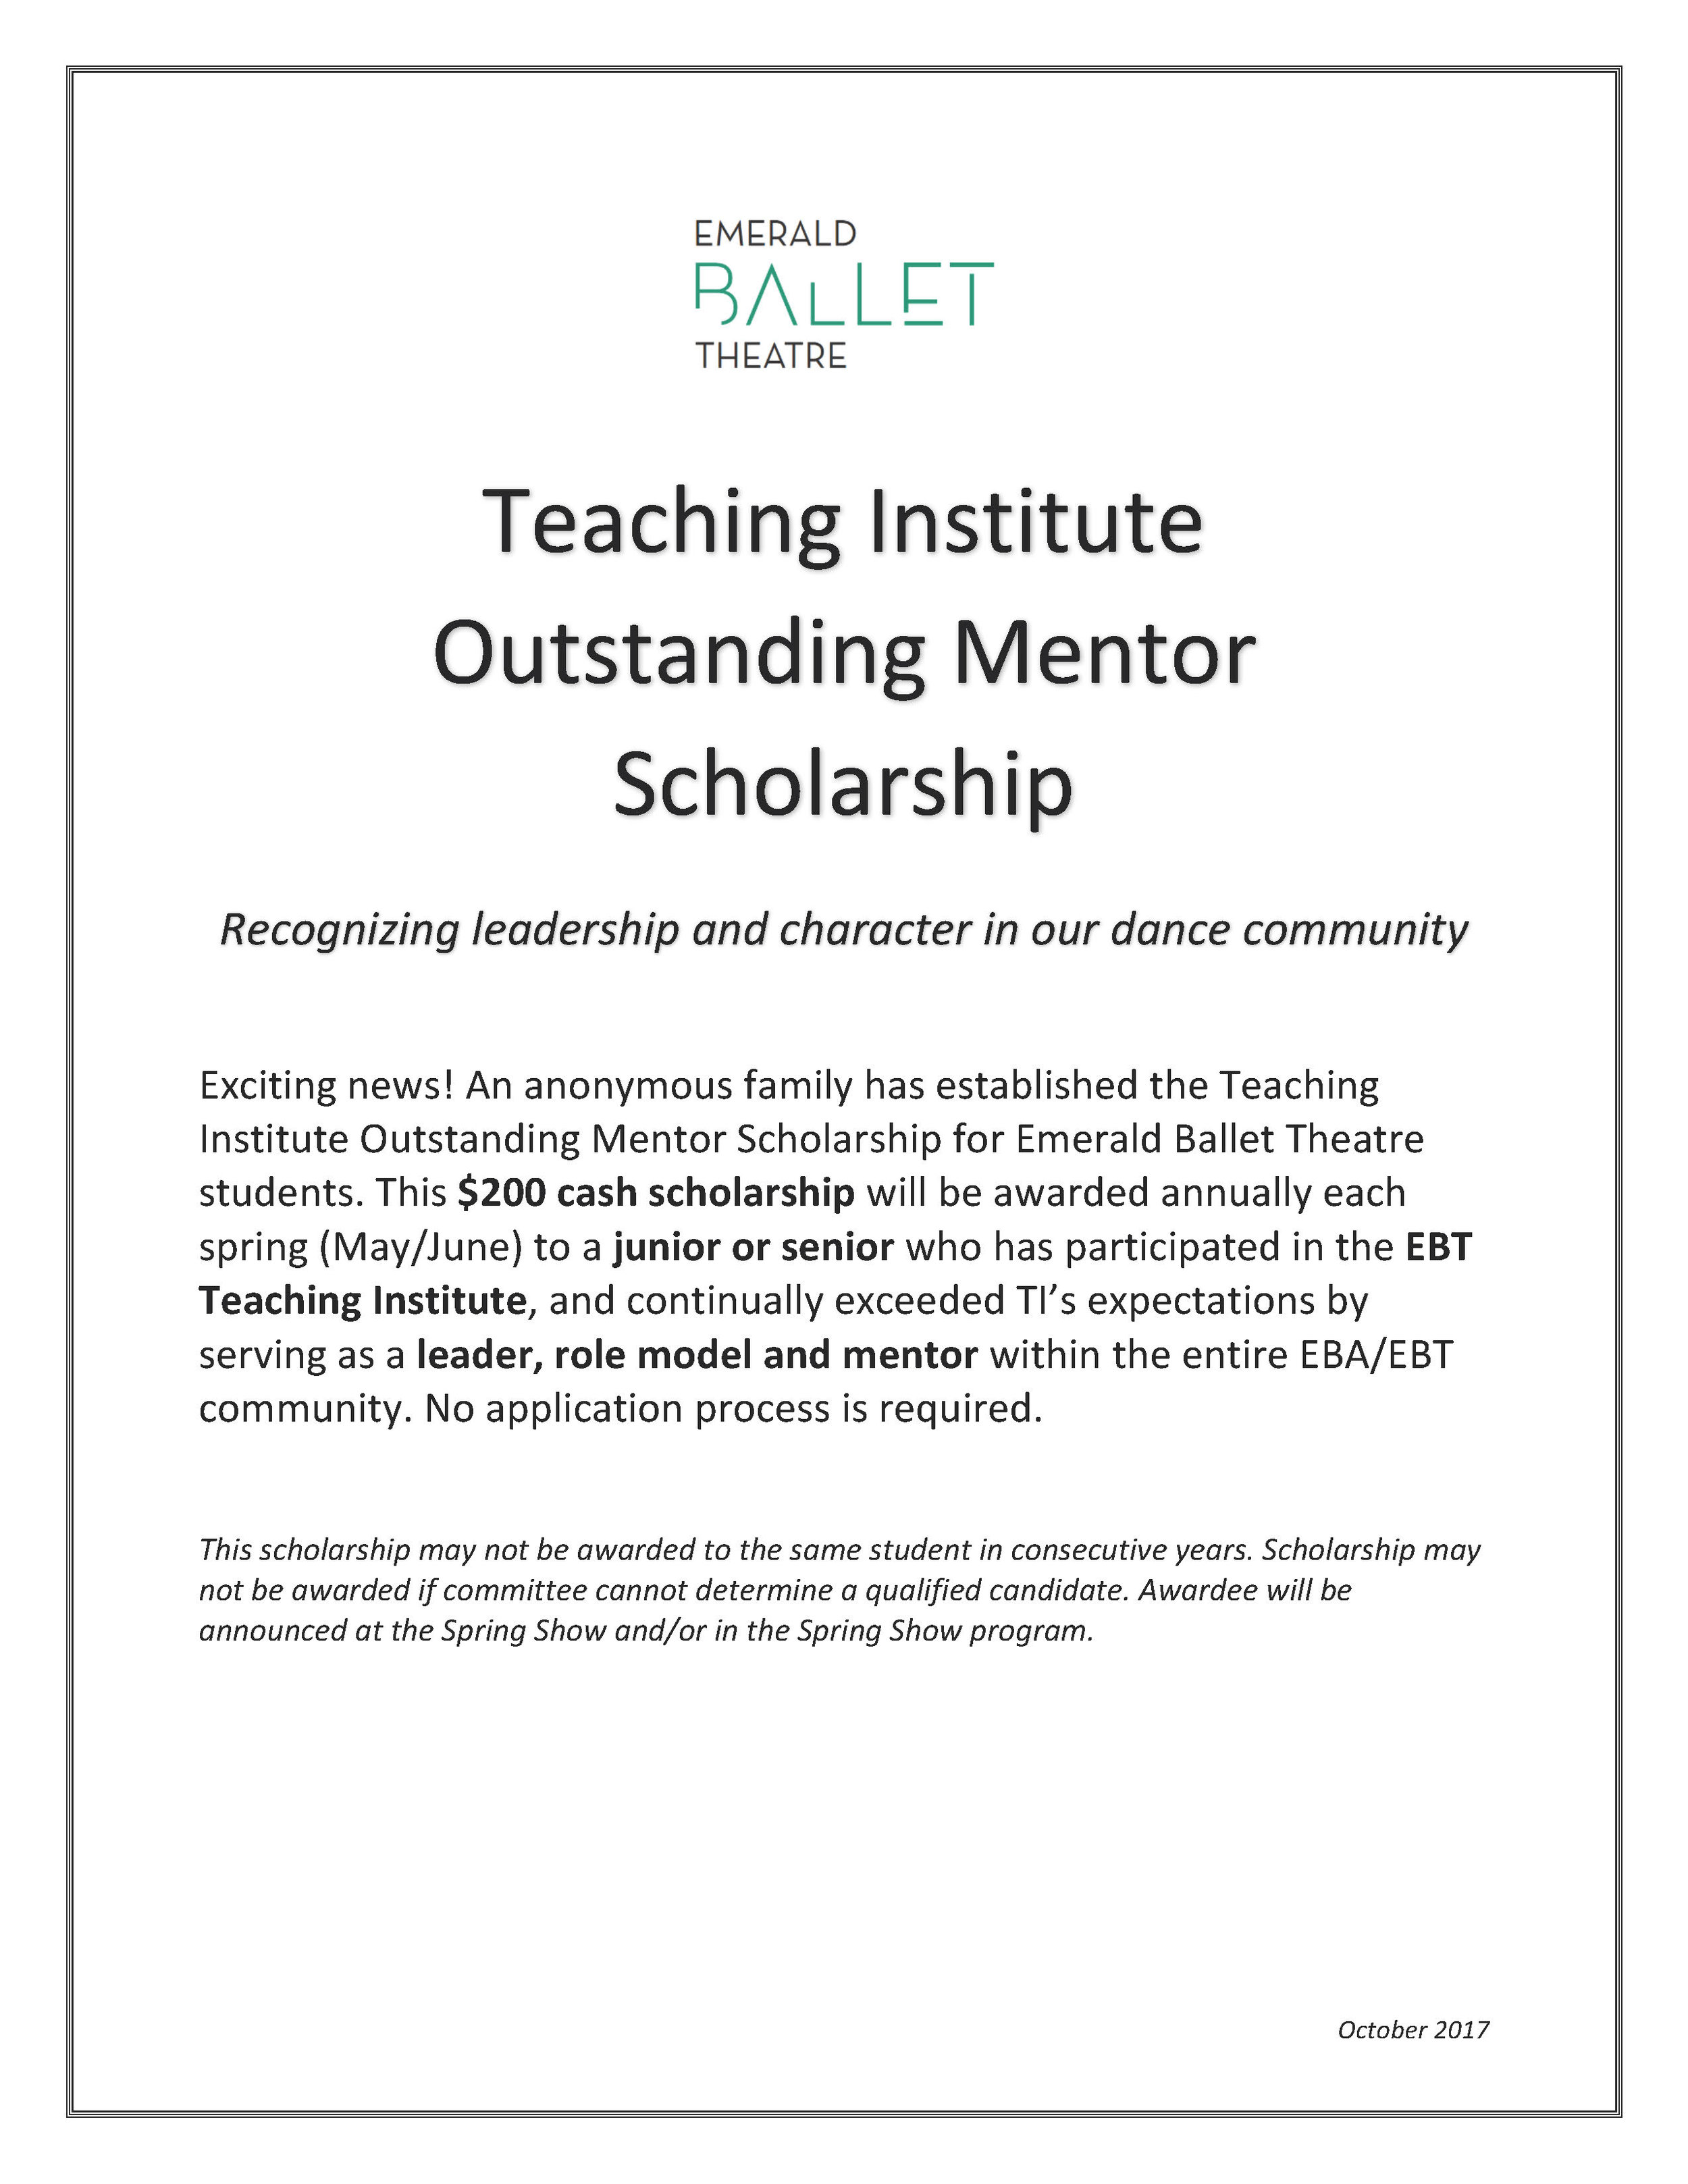 Teaching Institute Outstanding Mentor Scholarship.jpg